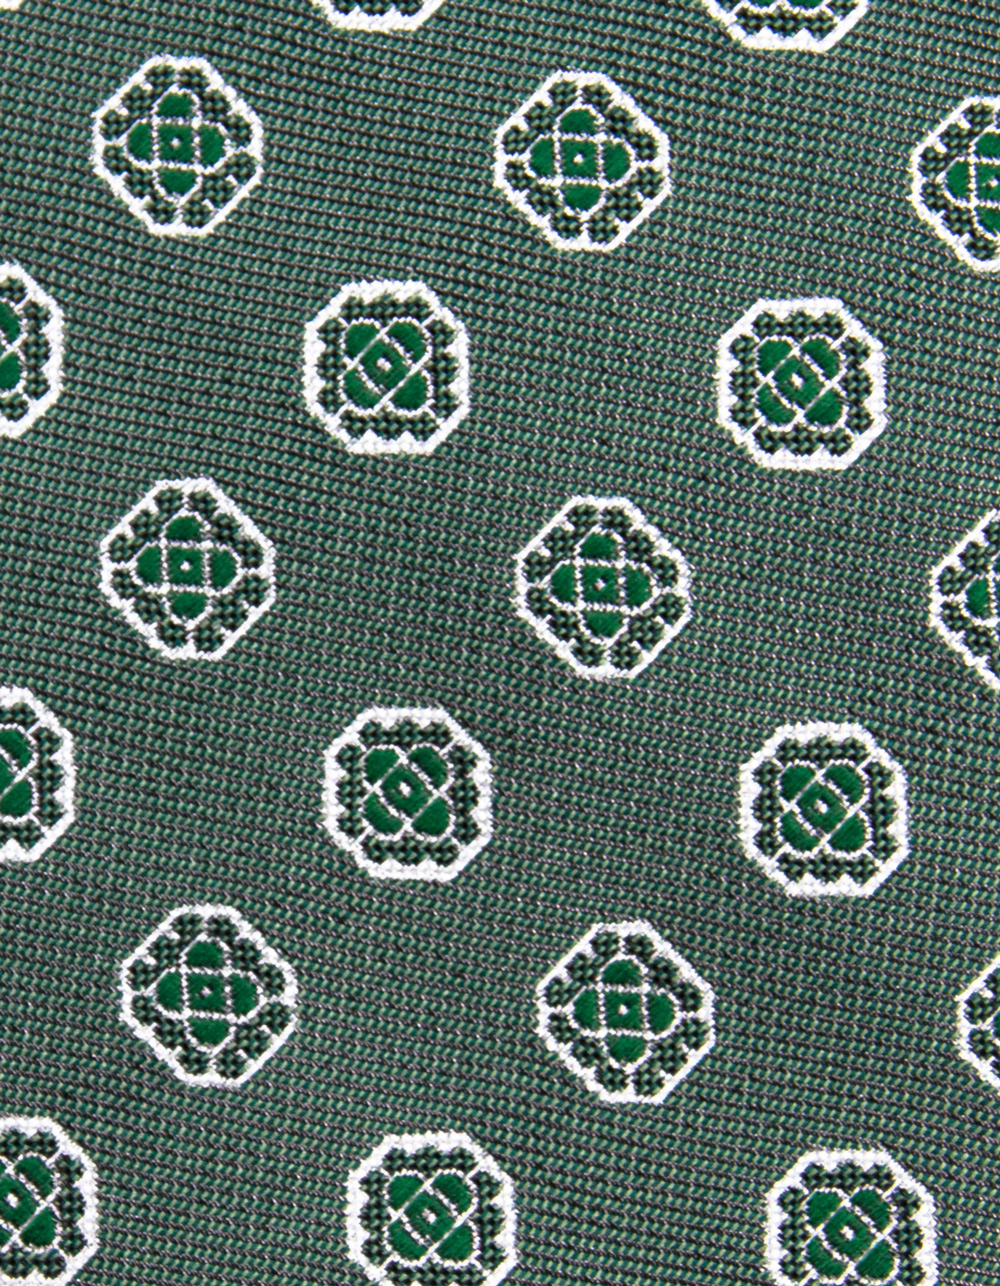 Green and white fantasy tie - Backside